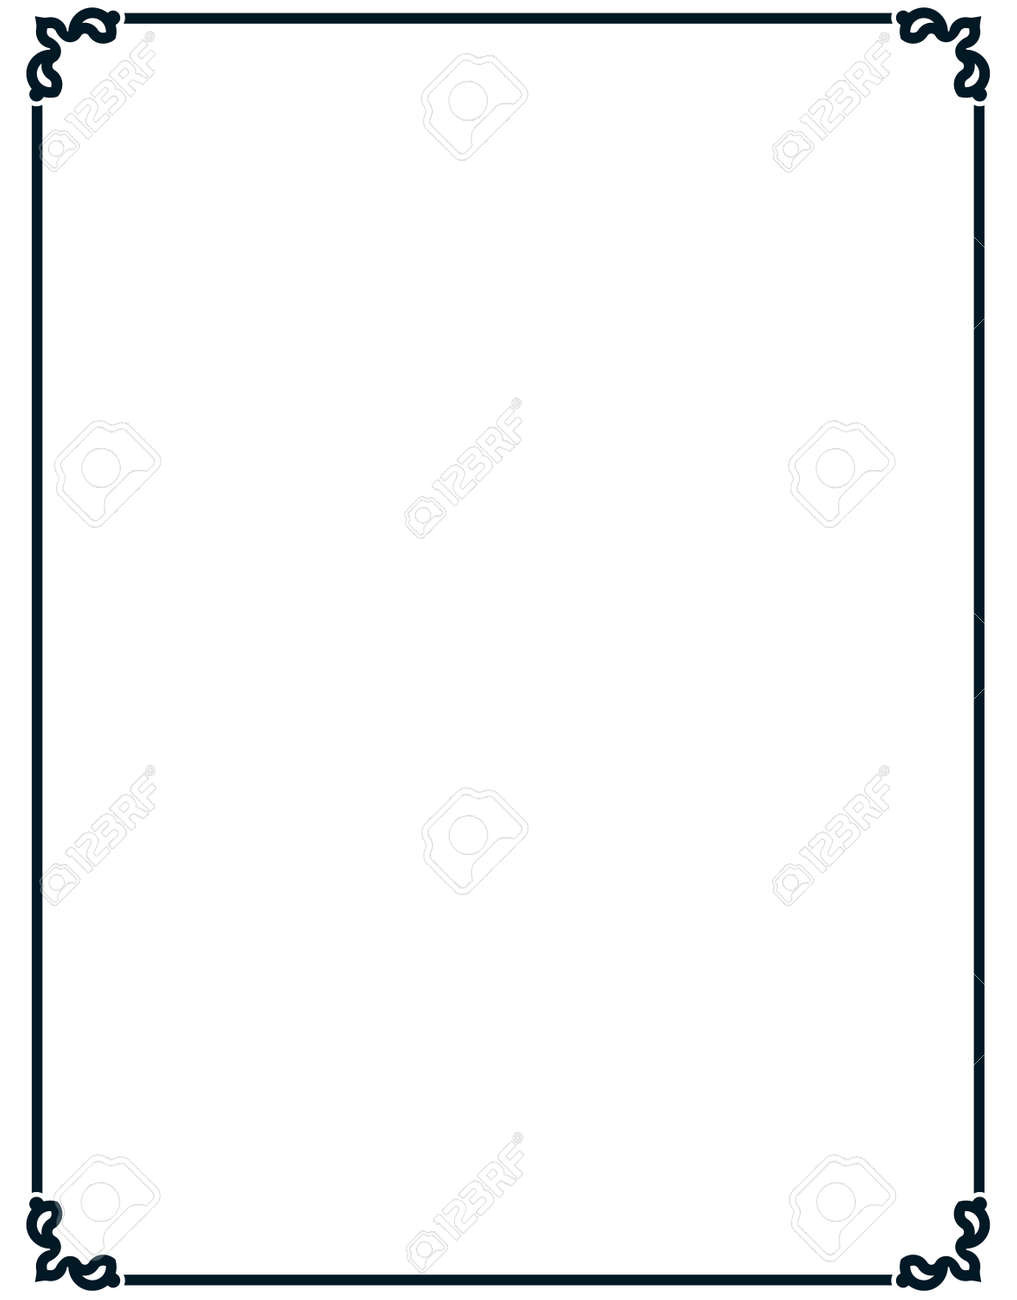 border frame deco vector art simple line corner royalty free rh 123rf com vector borders and frames vector borders and frames free